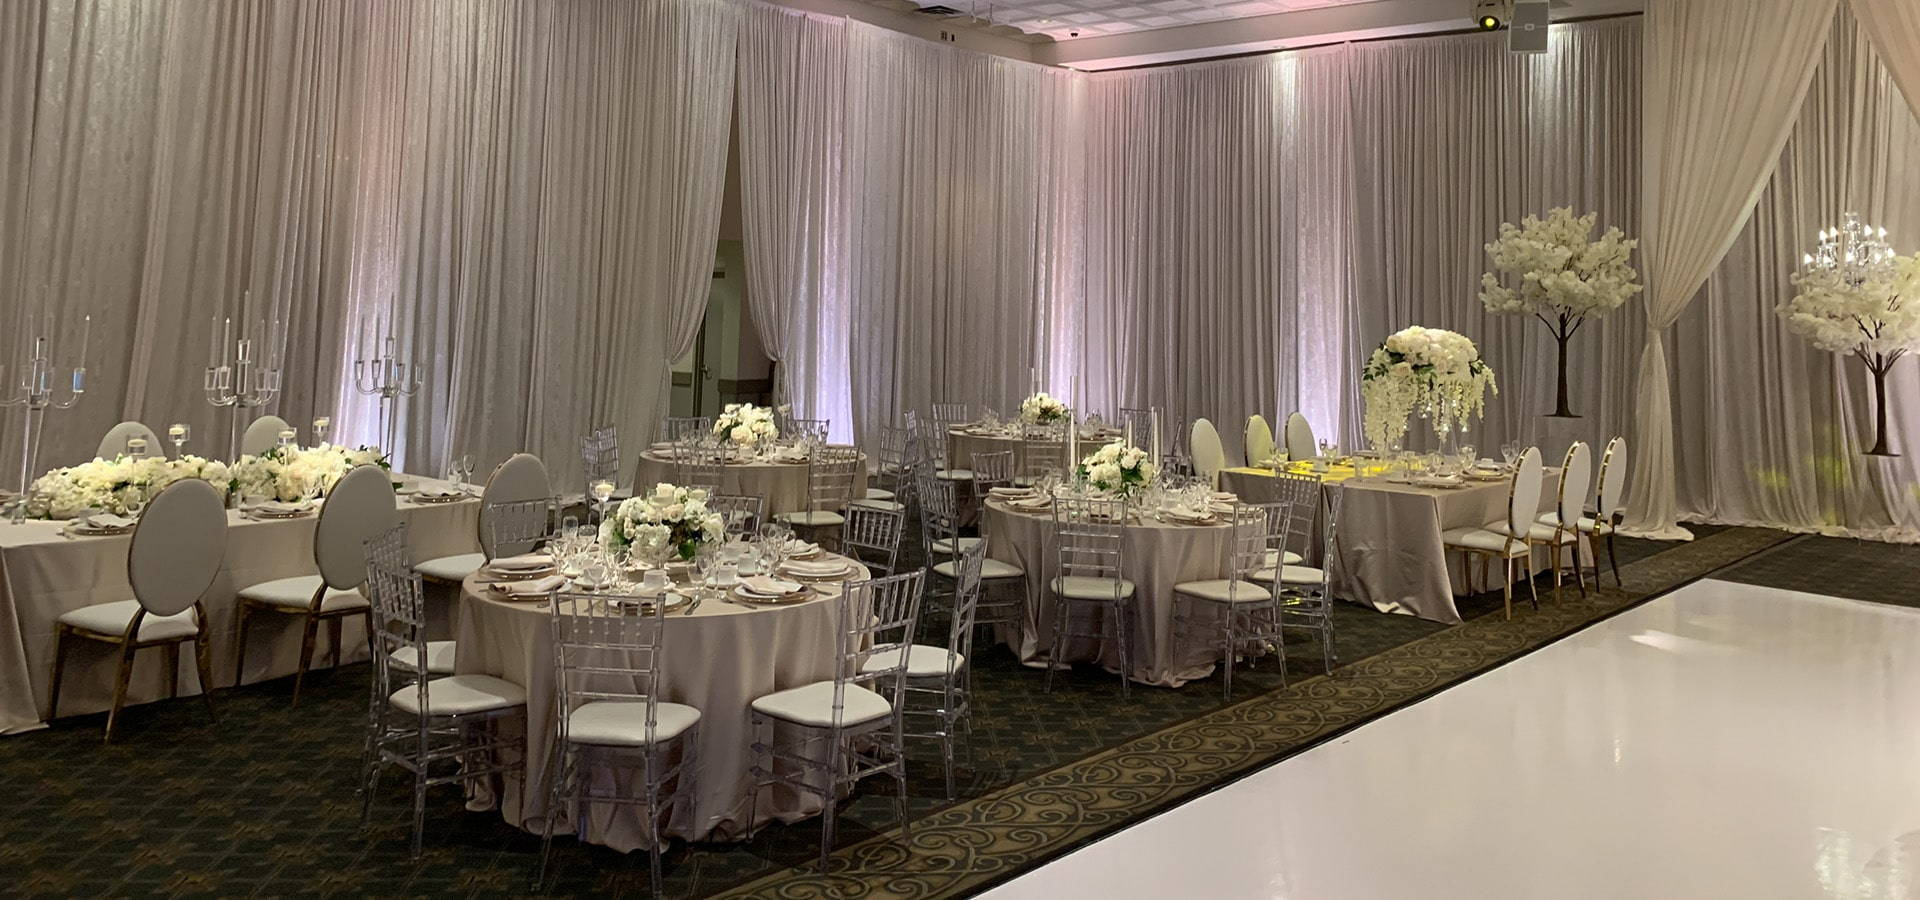 Hero image for 15 Beautiful Banquet Halls in Mississauga